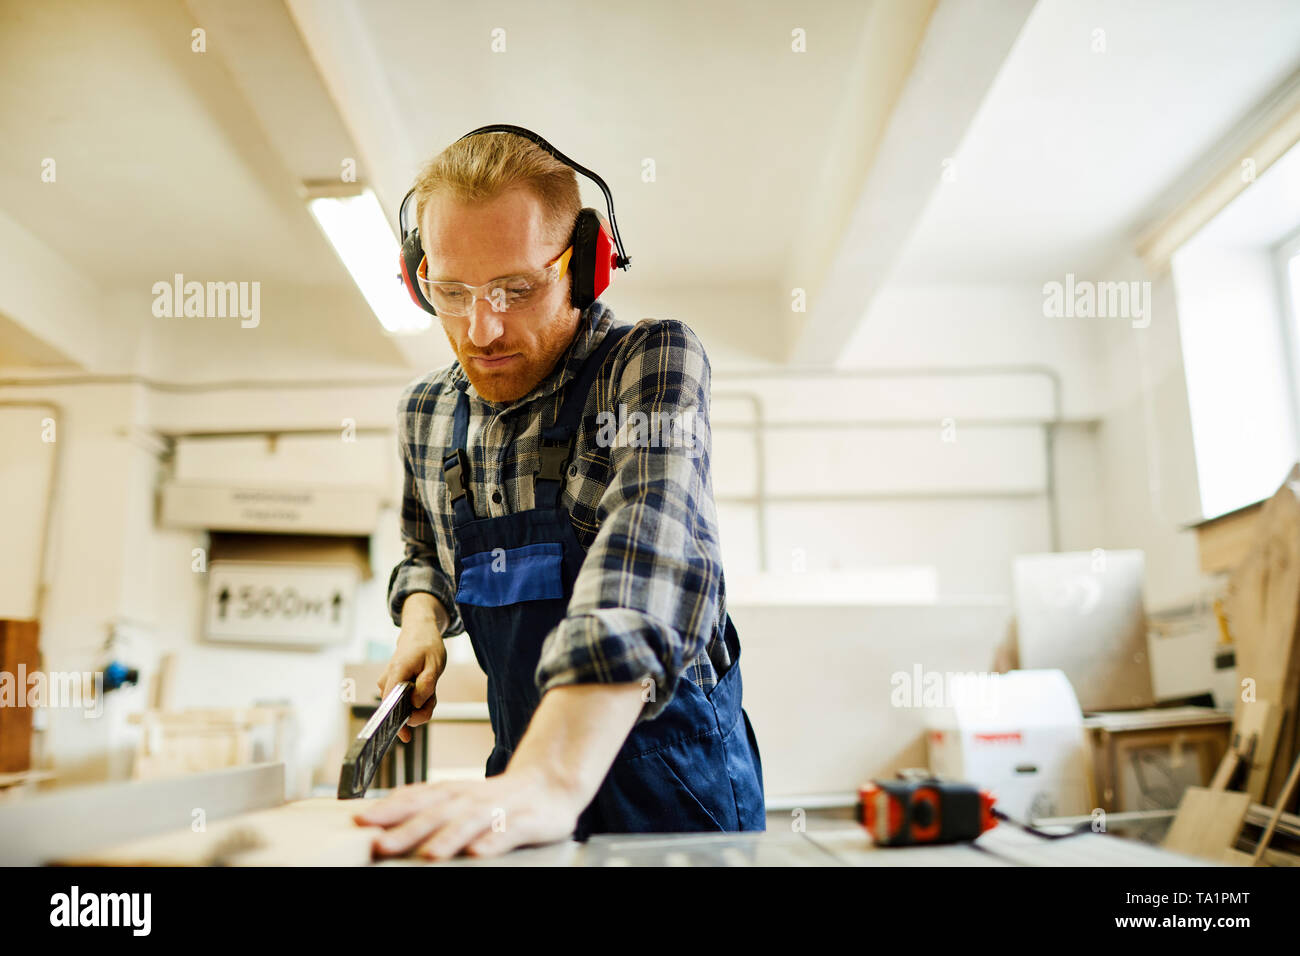 Waist up portrait of contemporary carpenter cutting wood while working in joinery, copy space - Stock Image